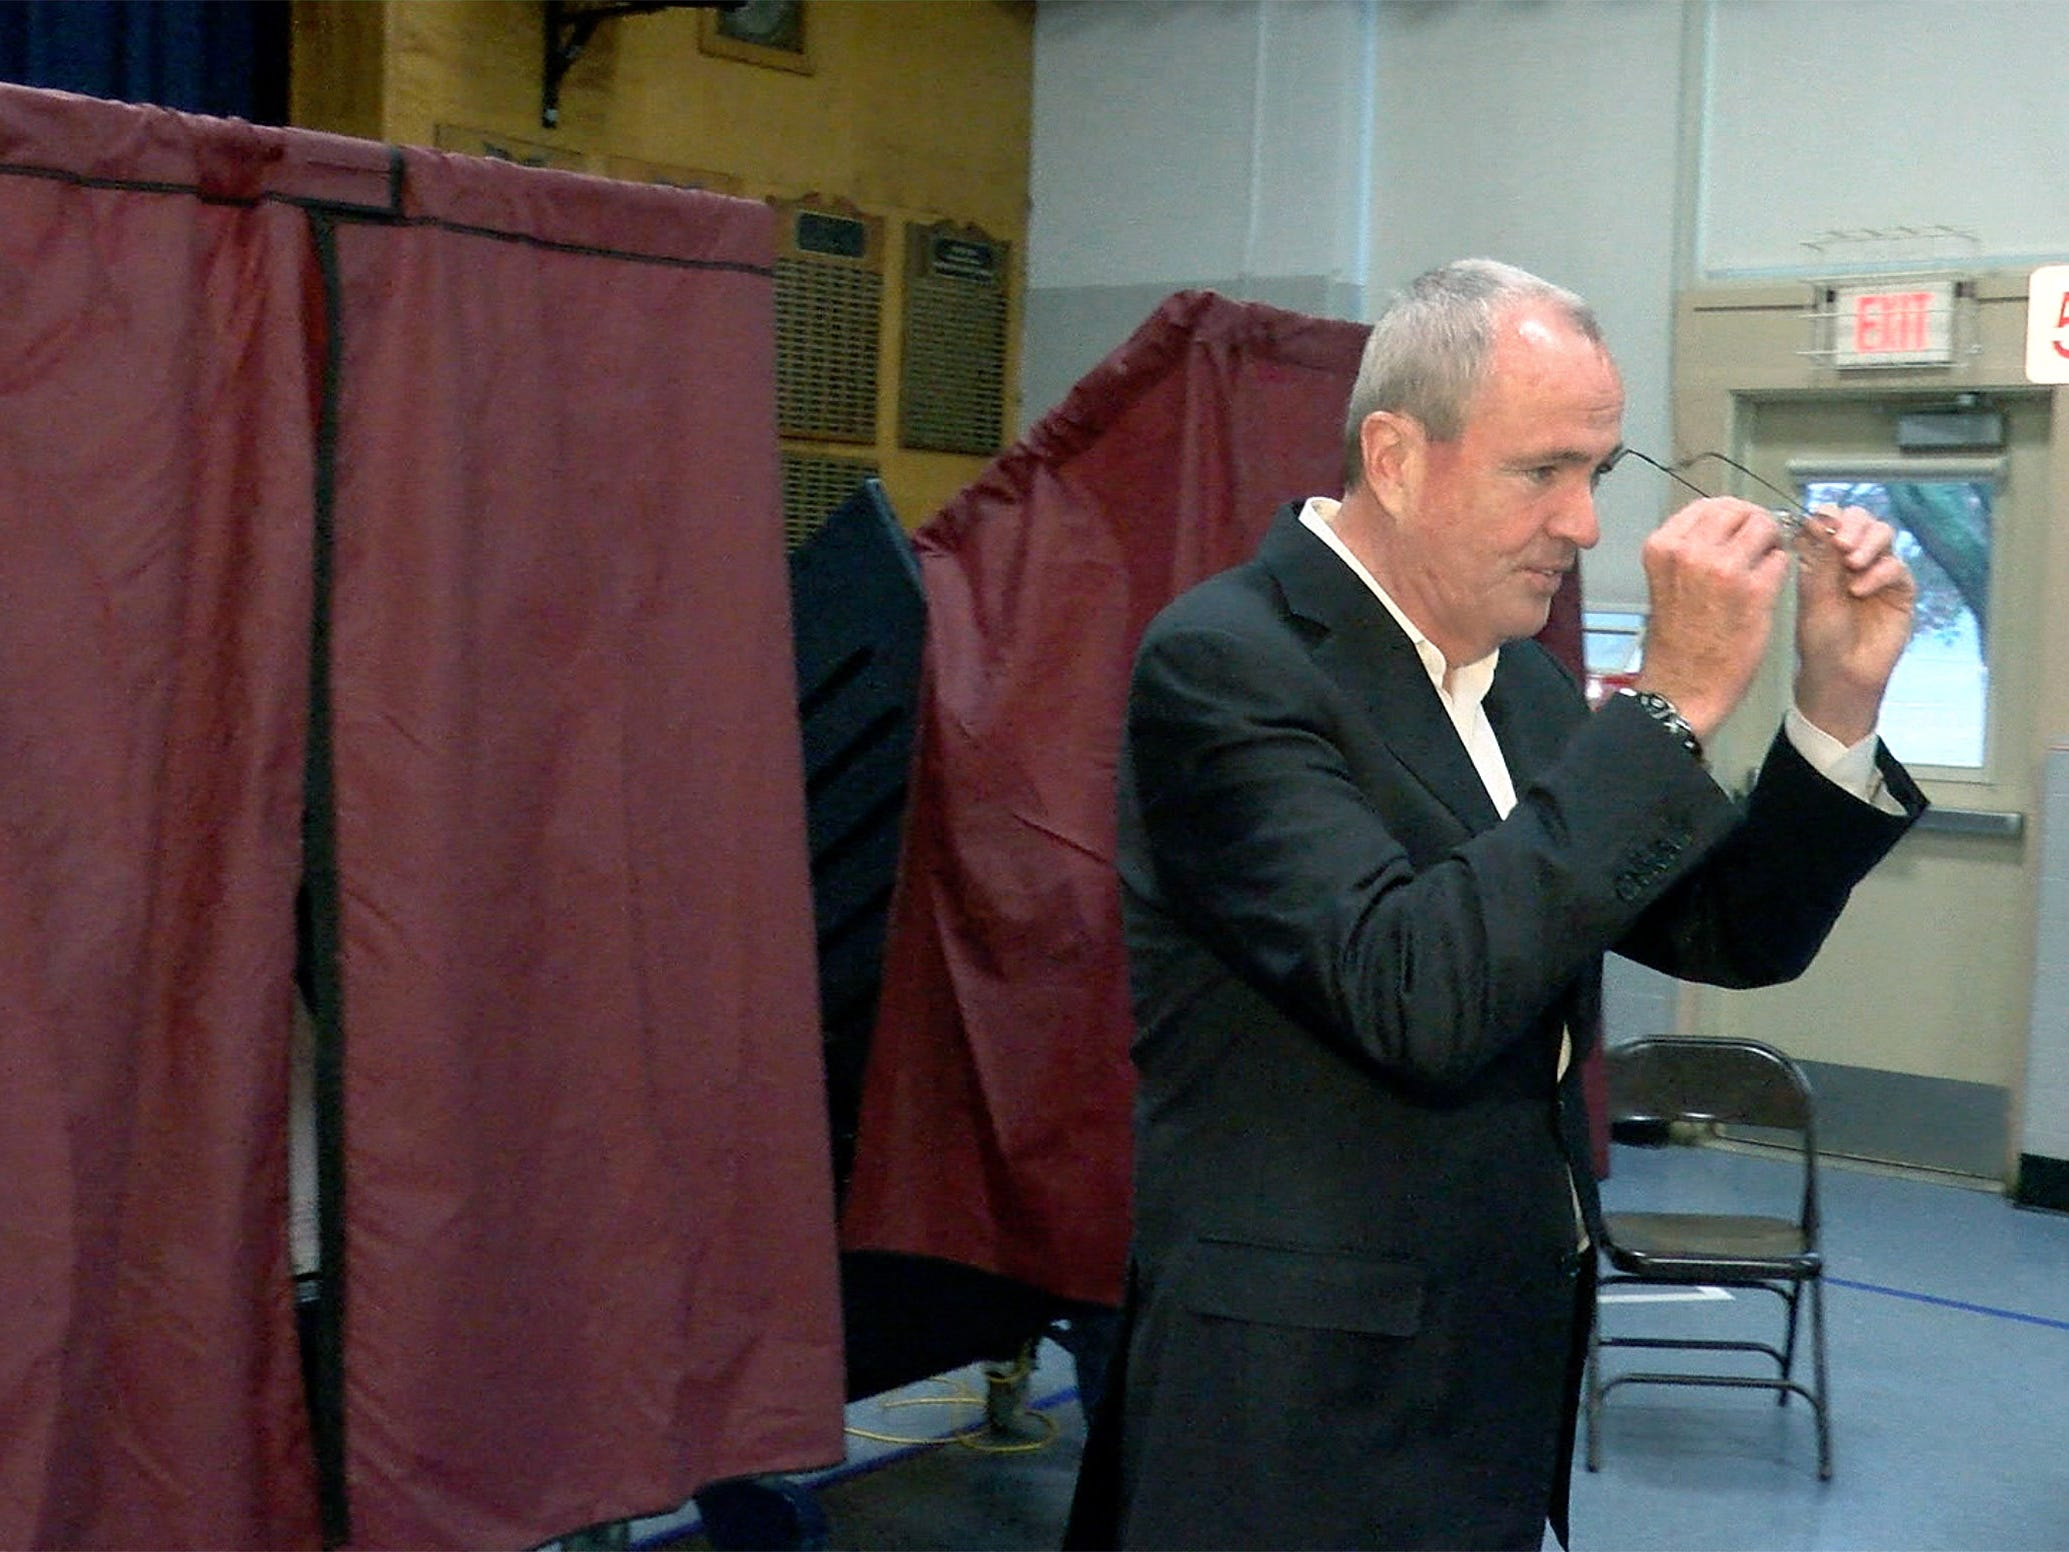 NJ Governor Phil Murphy leaves the booth after voting at the Fairview Elementary School in Middletown Tuesday, November 6, 2018.